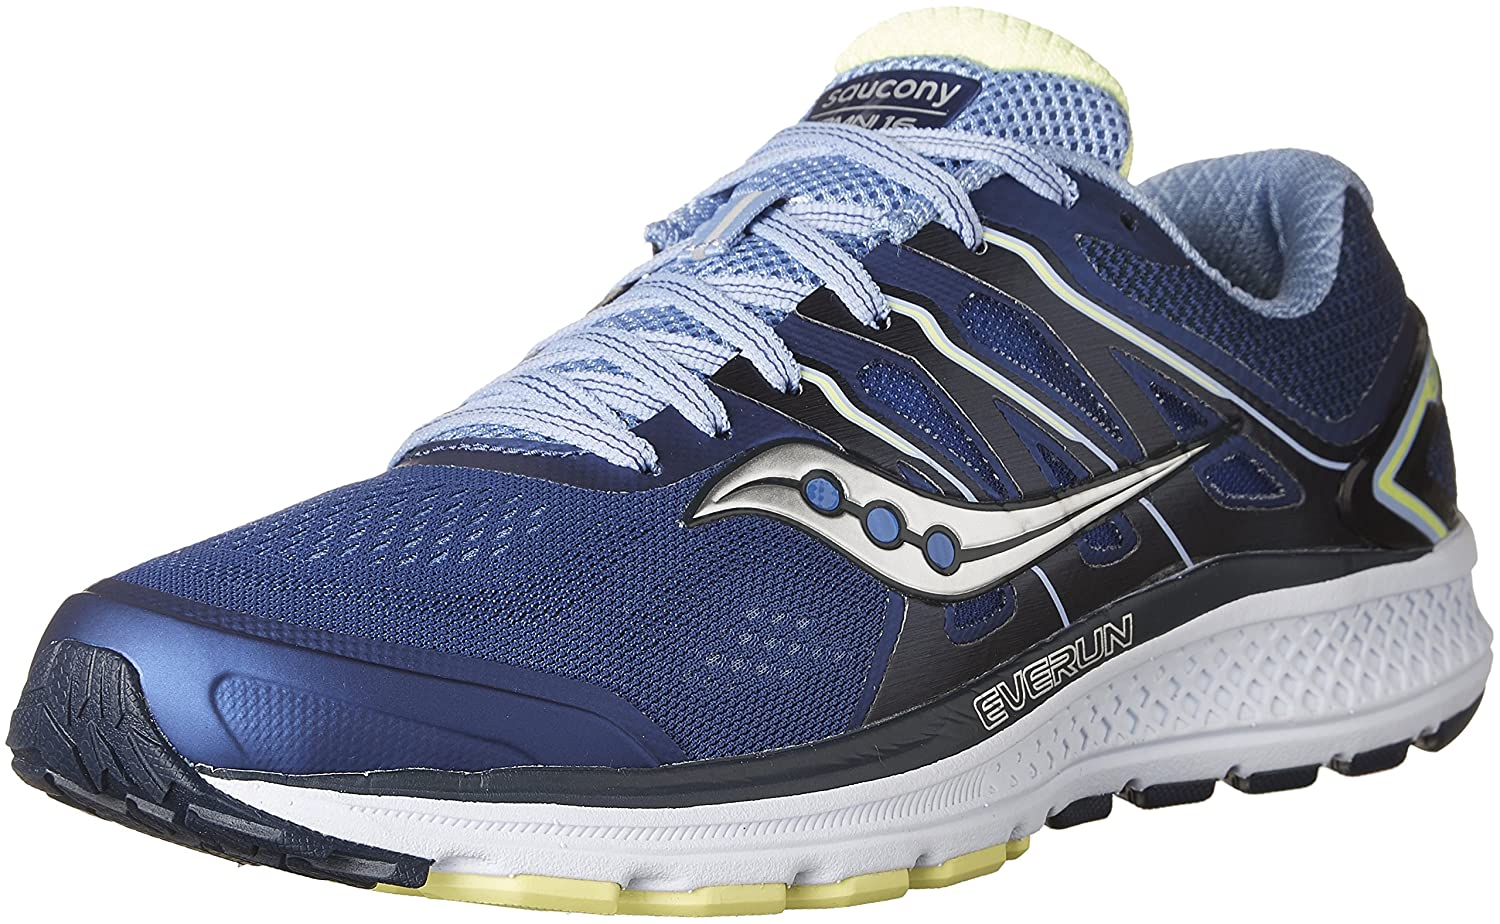 f95673b2a3 Saucony Women's Guide 10 Running Shoes